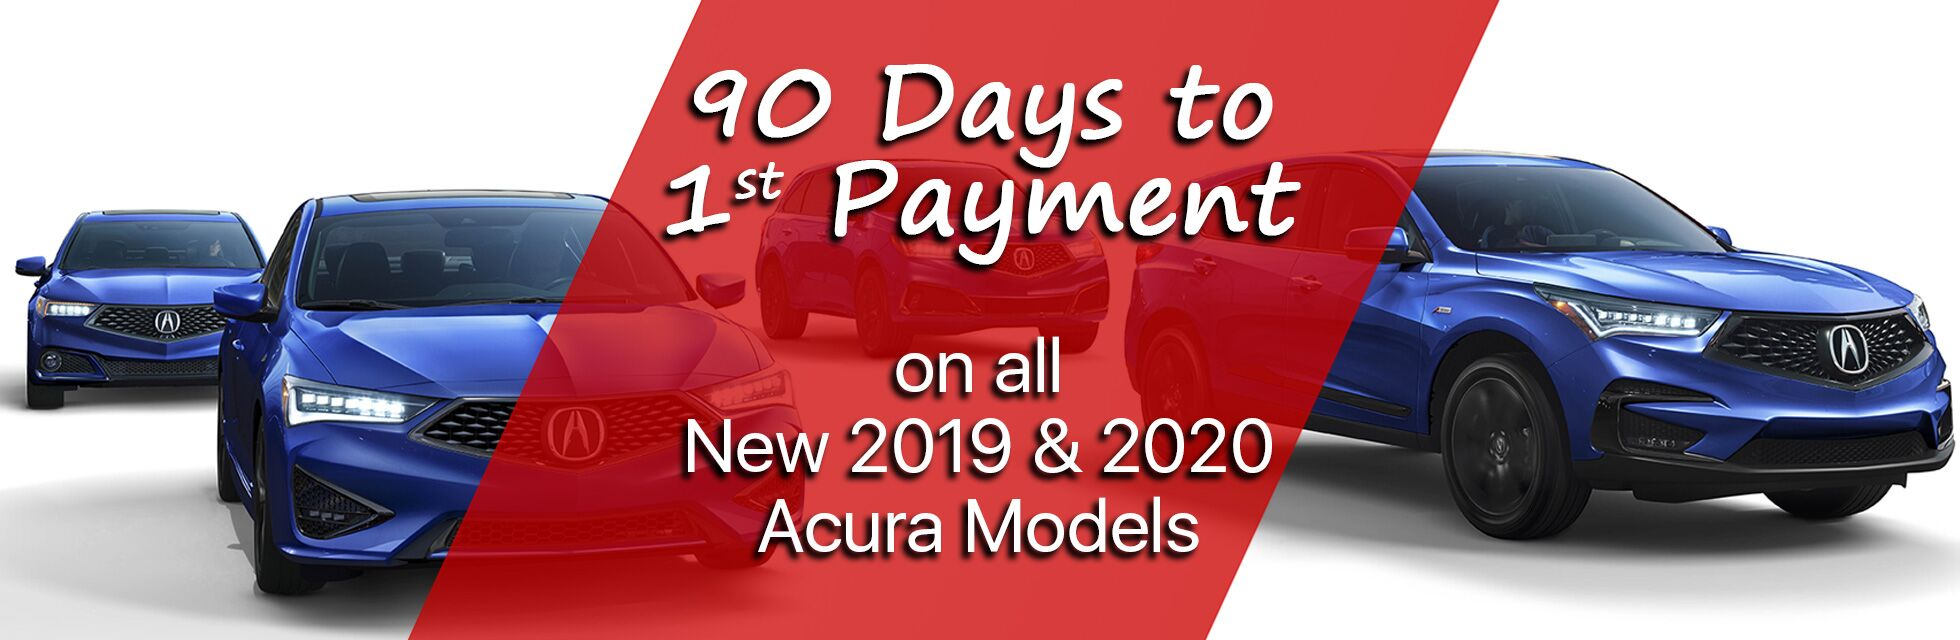 90 Days to 1st Payment Marin Acura 031420